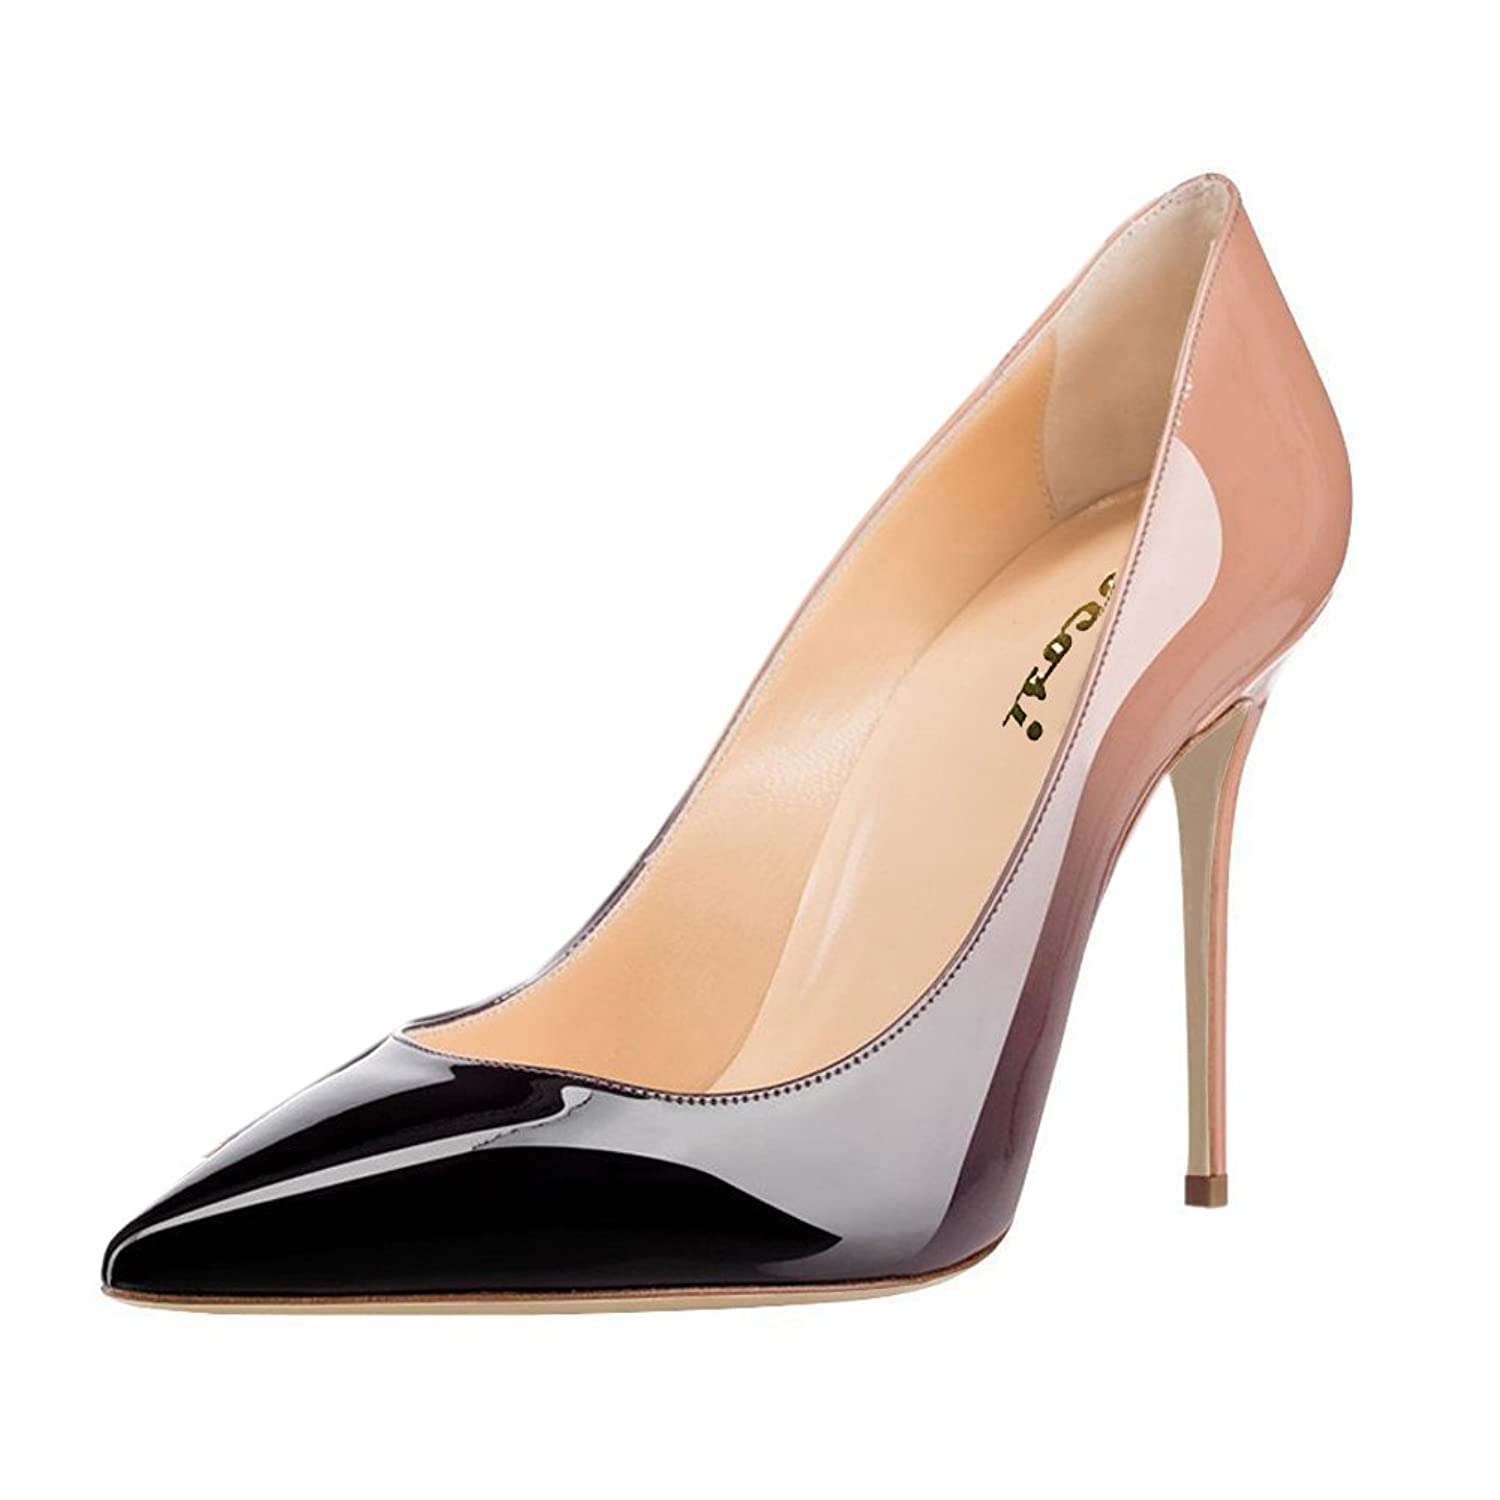 VOCOSI Women's Bzaaz Pointed Toe Pumps,Stilettos High Heels